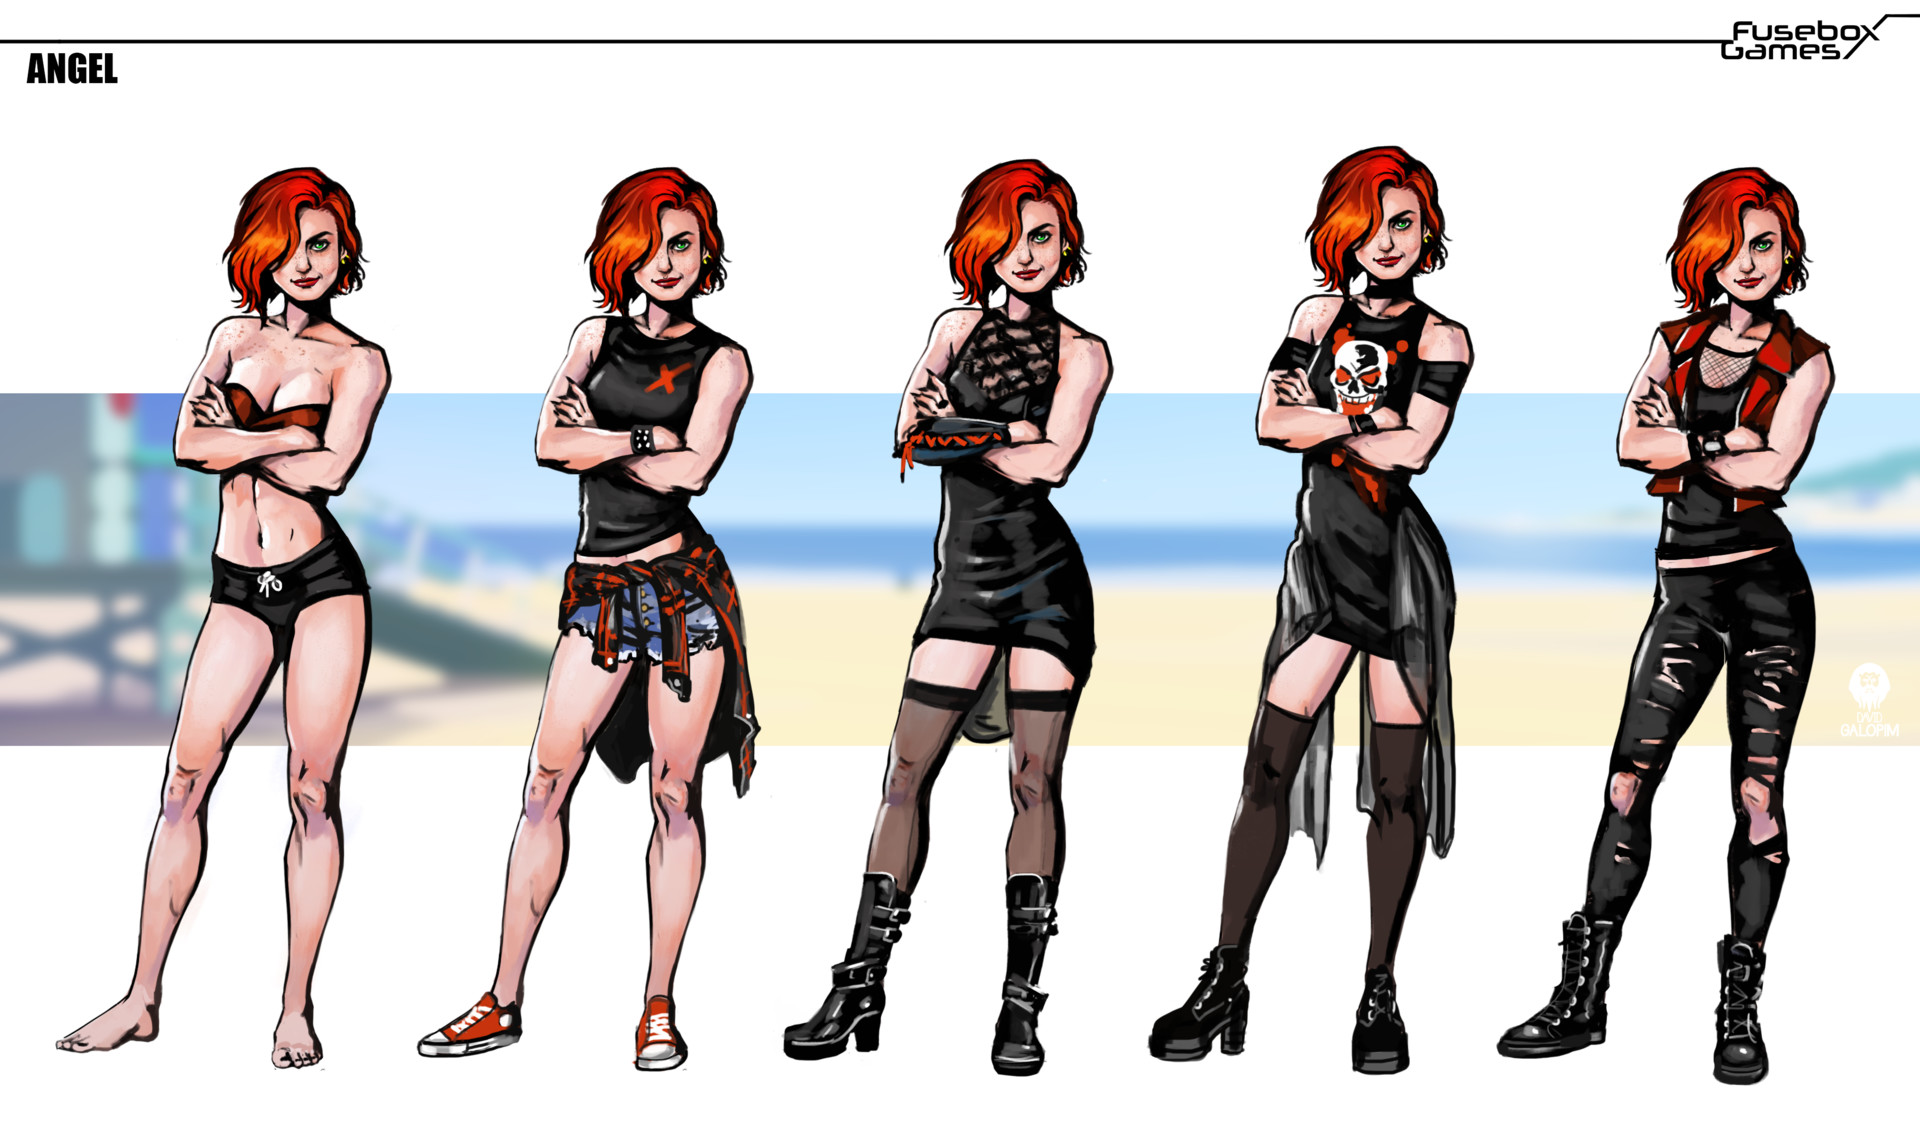 hight resolution of artstation baywatch the game characters david galopim the game fuse box